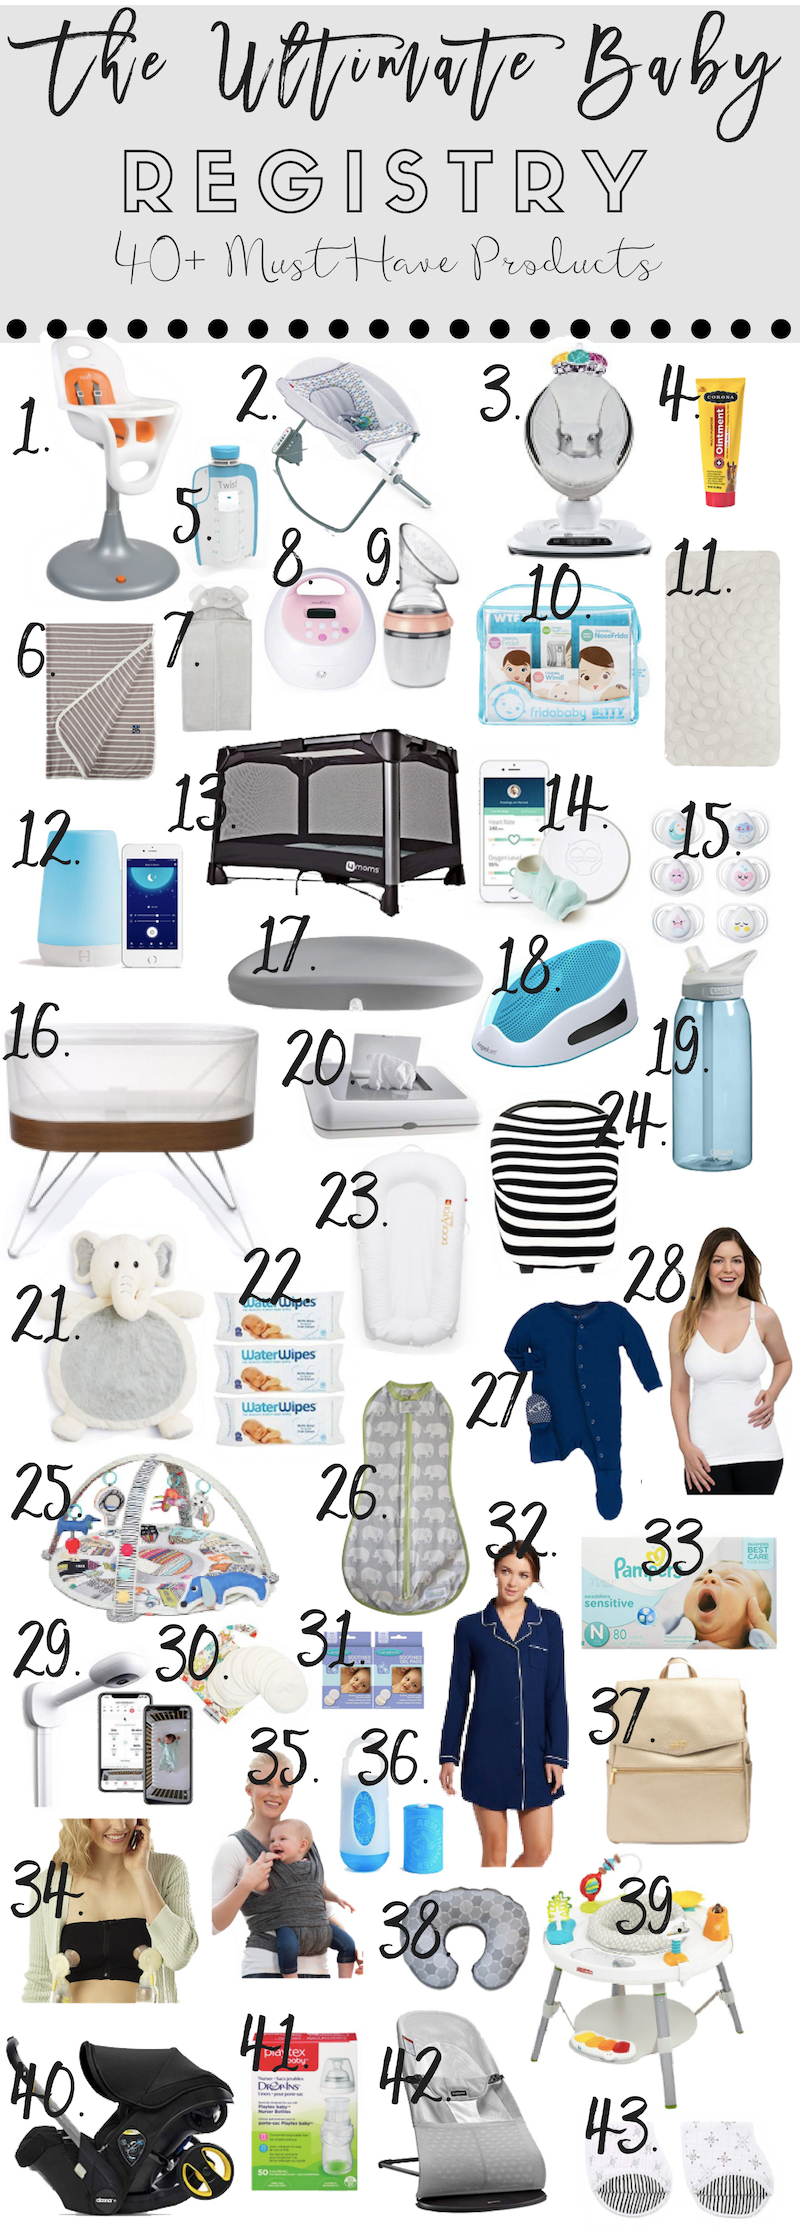 40+ Must Have Items for Your Baby Registry - Ashlee Nichols